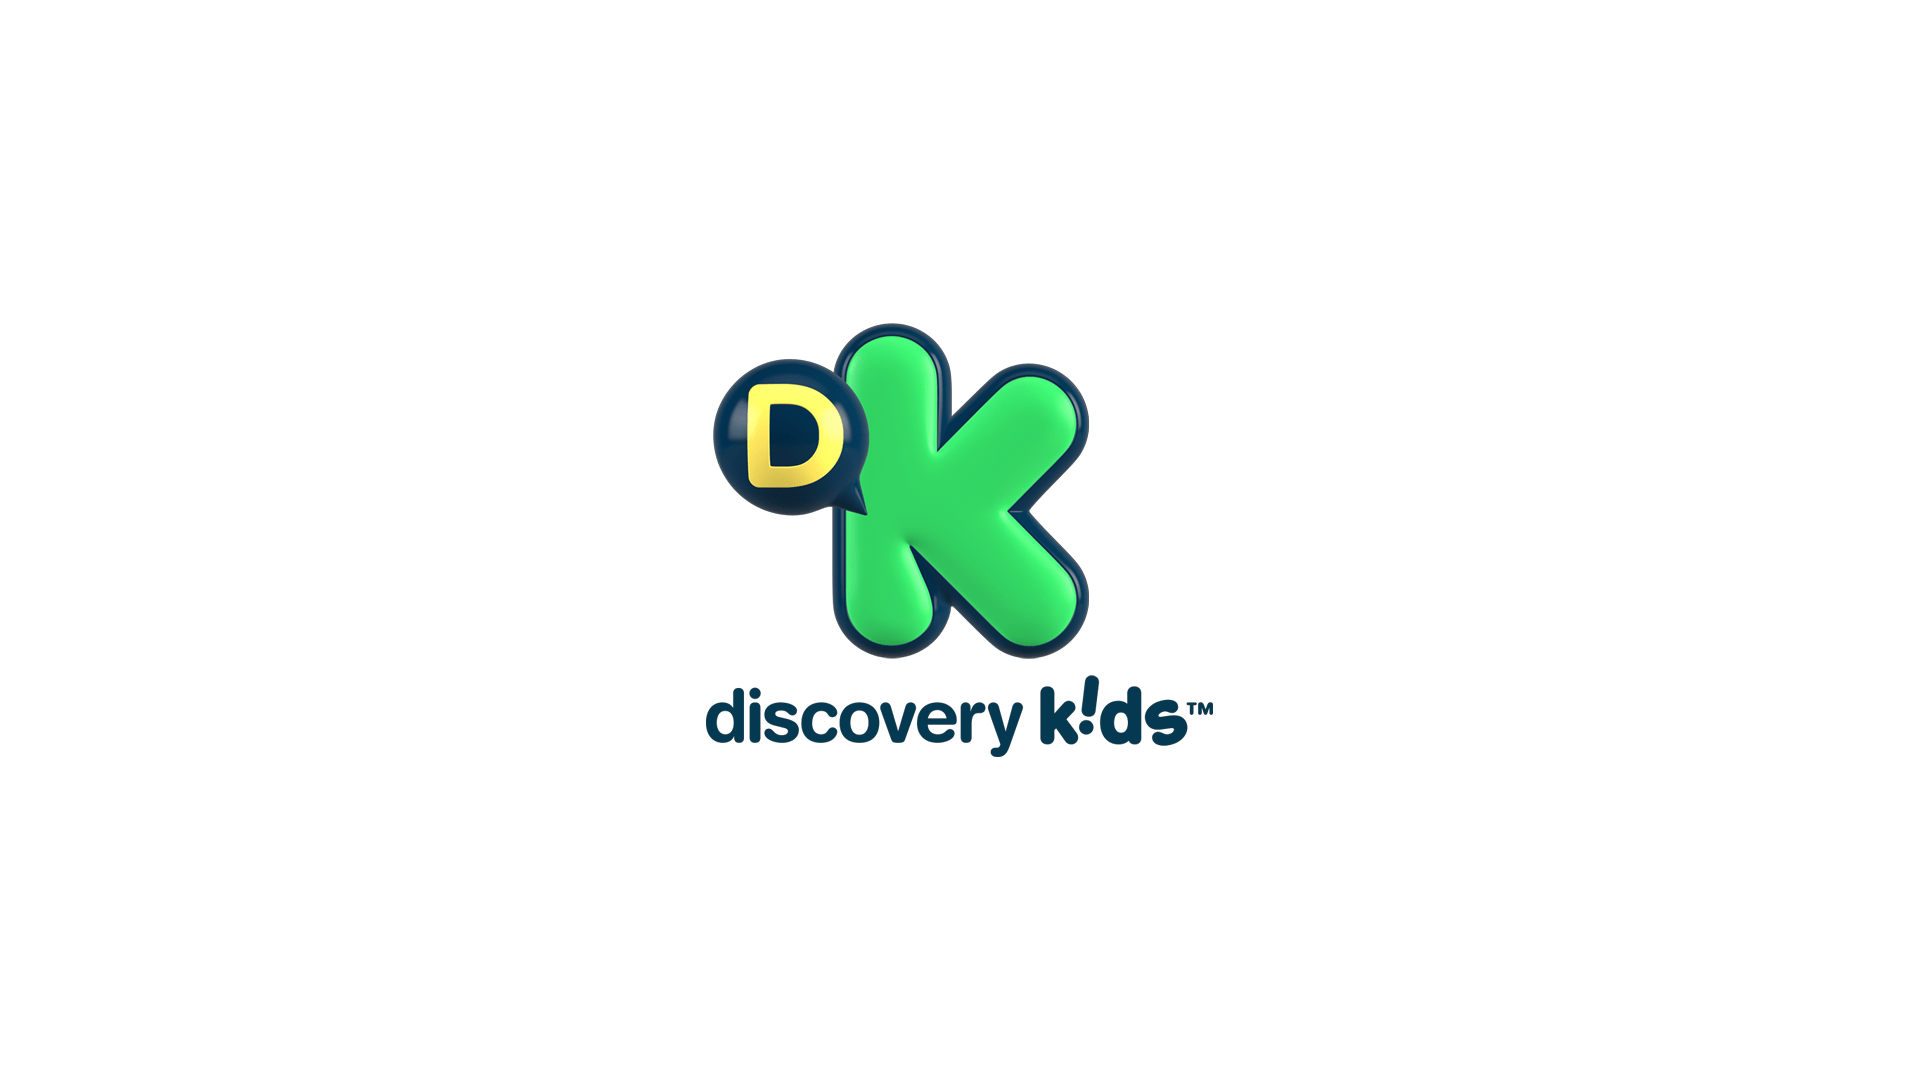 Discovery Kids to premiere classic Japanese Animation series